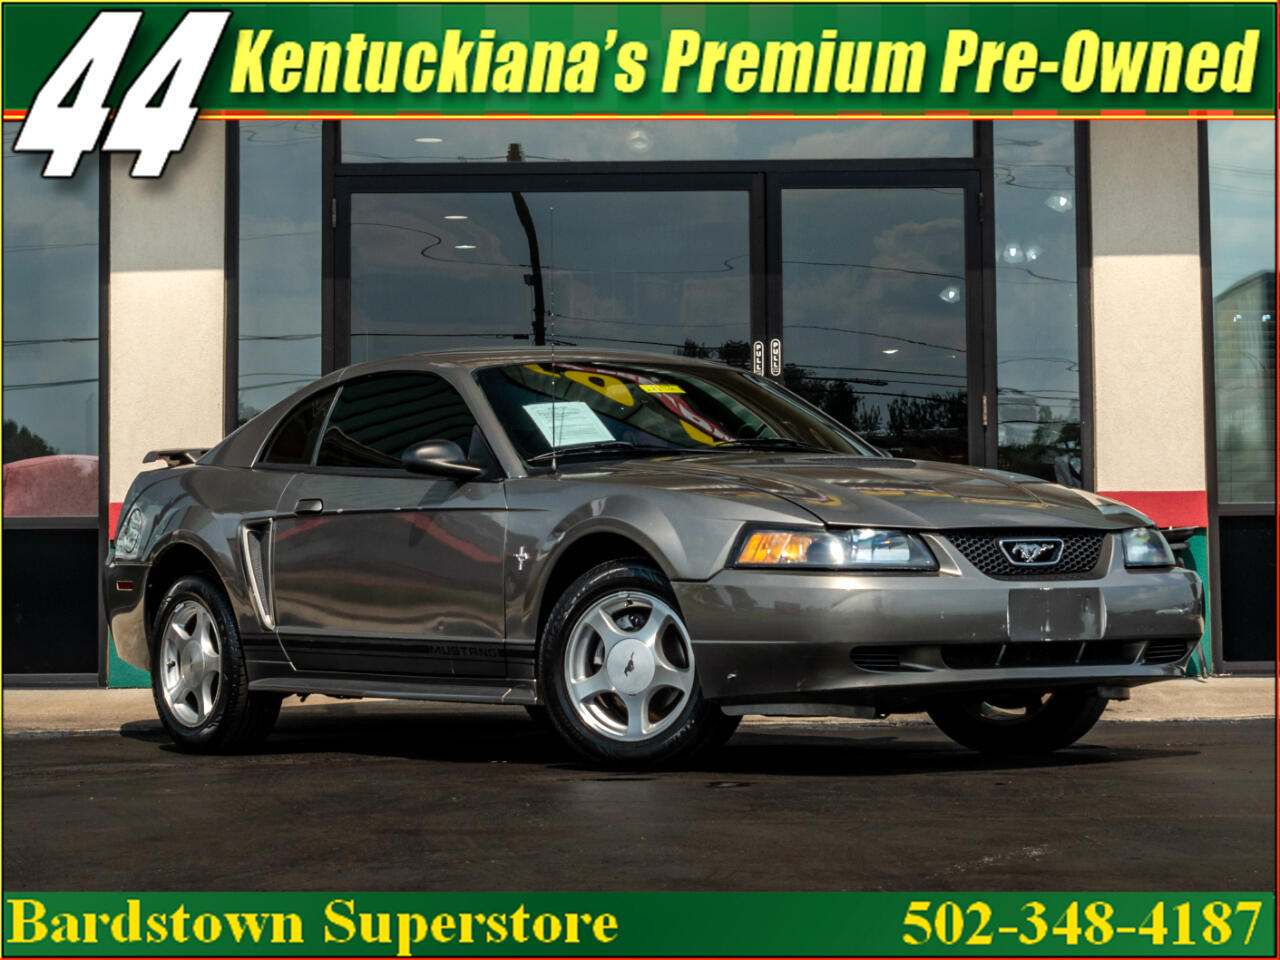 2001 Ford Mustang Deluxe Coupe